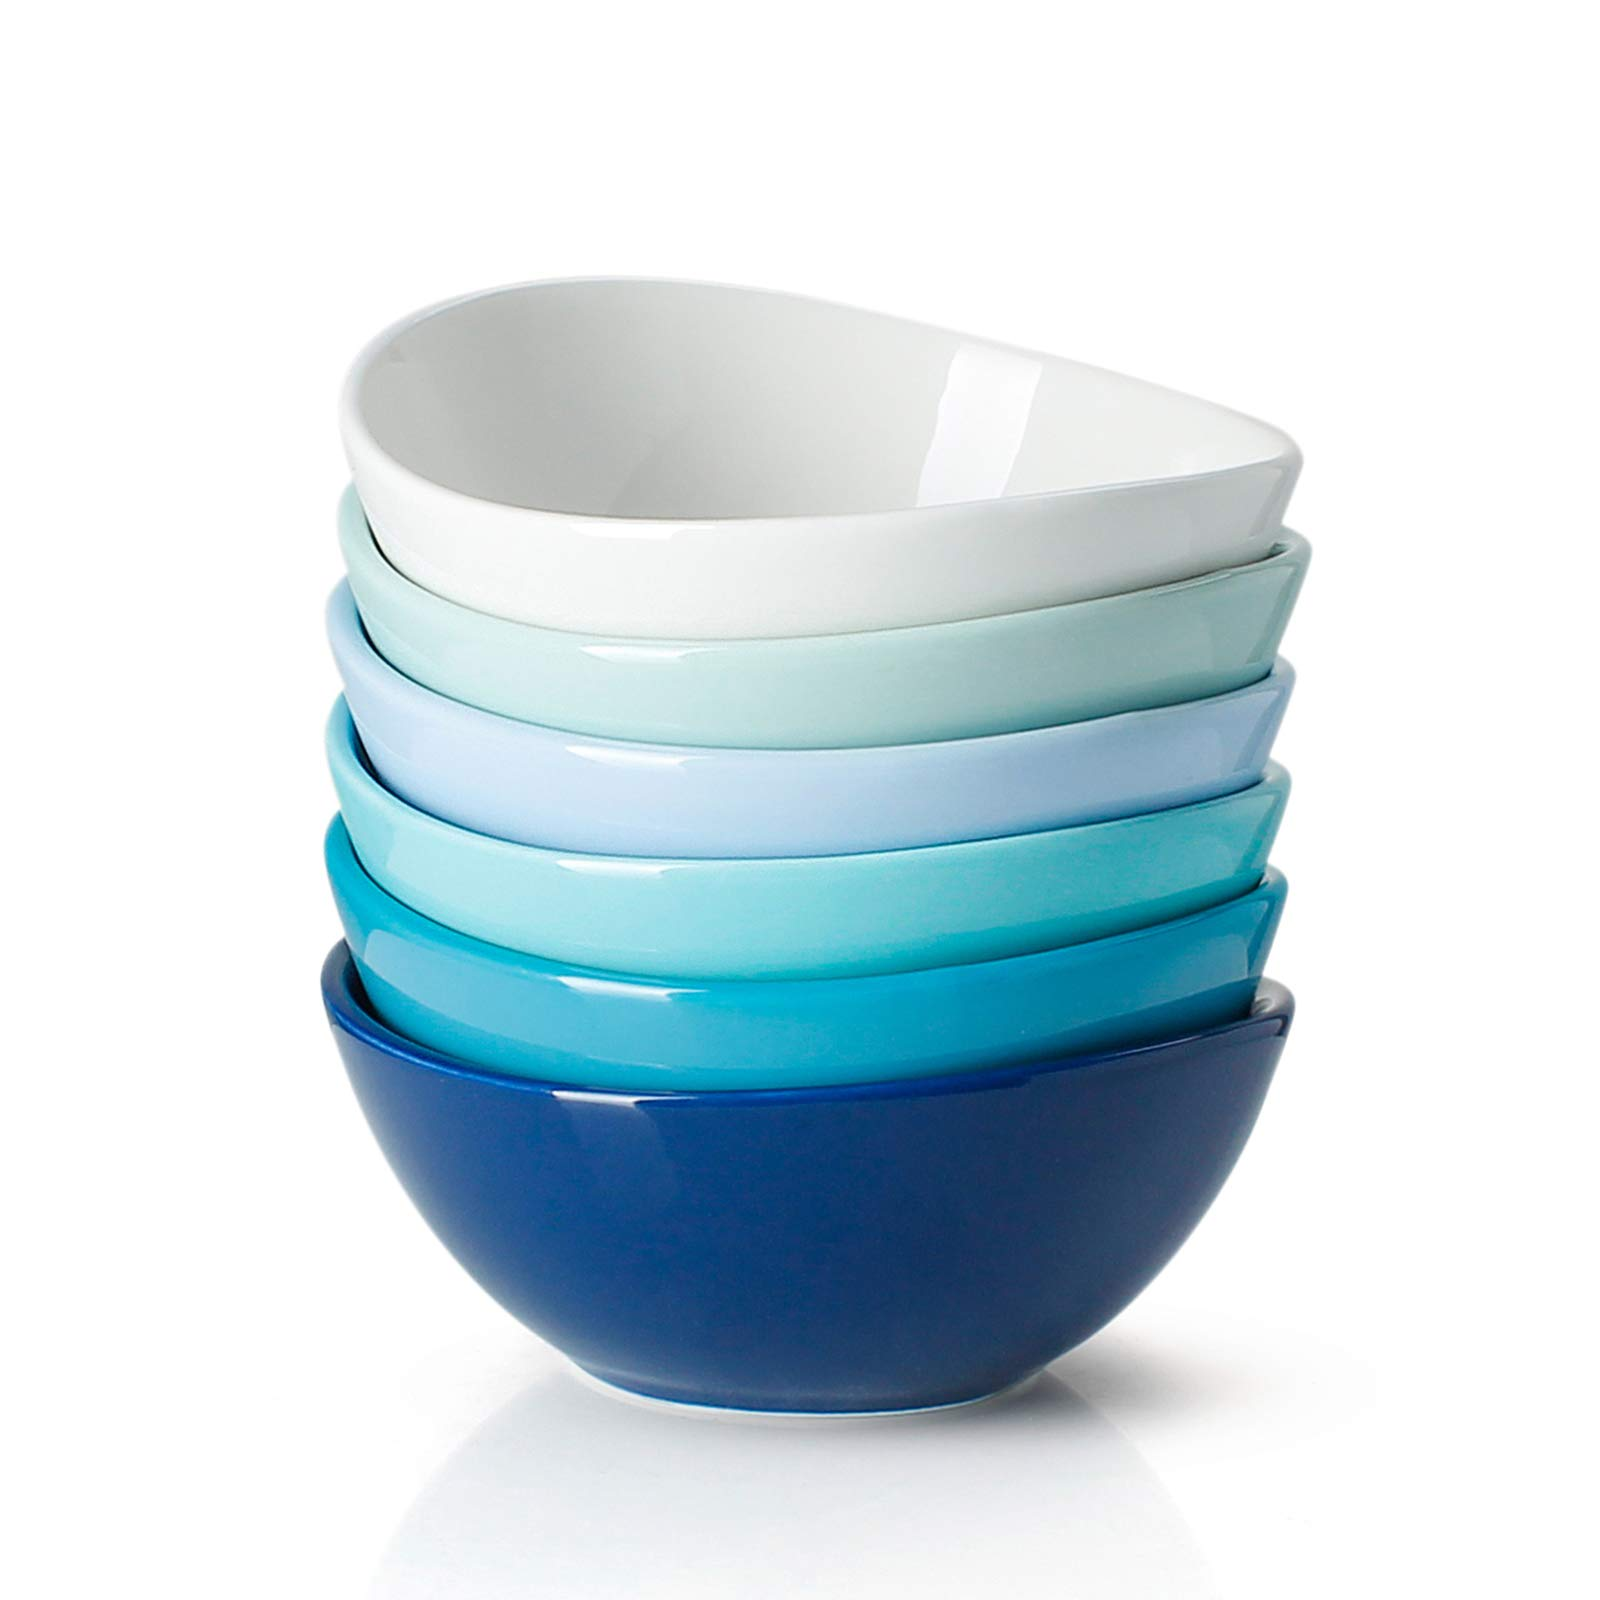 Sweese 101.003 Porcelain Bowls - 10 Ounce for Ice Cream Dessert, Small Side Dishes - Set of 6, Cool Assorted Colors